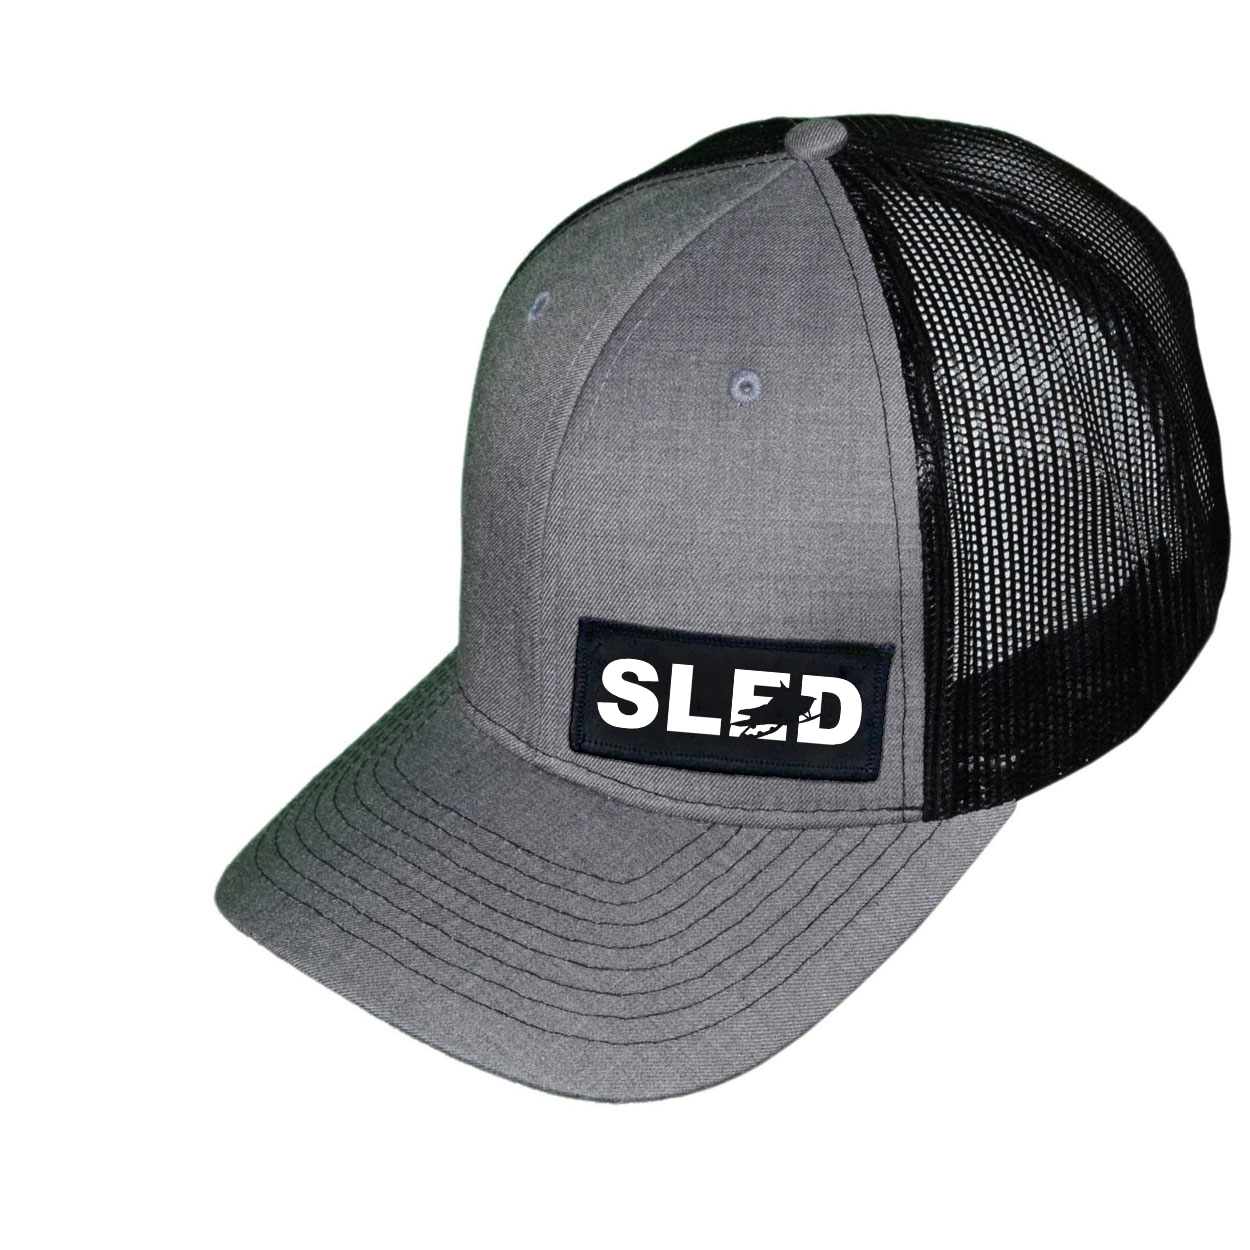 Sled Snowmobile Logo Night Out Woven Patch Snapback Trucker Hat Heather Gray/Black (White Logo)